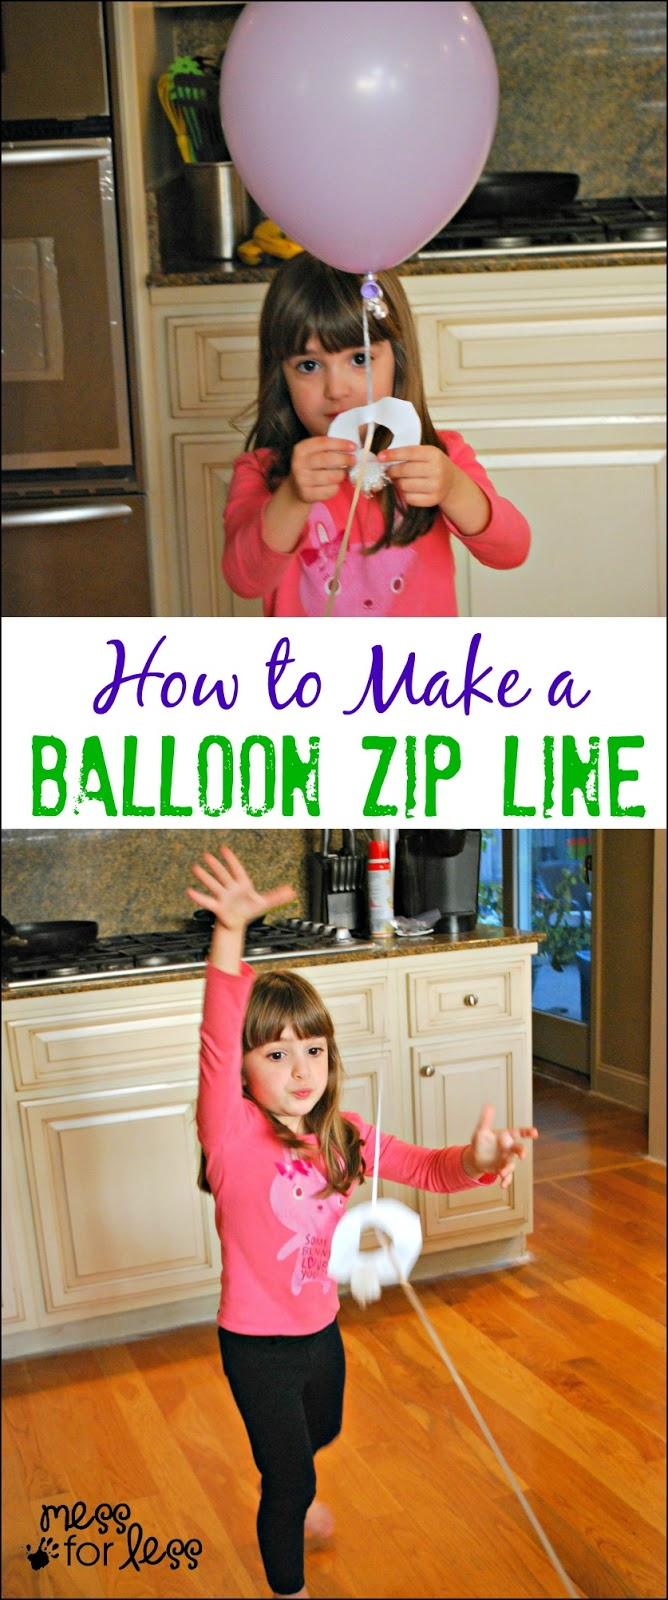 How To Build A Zip Line: Make A Balloon Zip Line